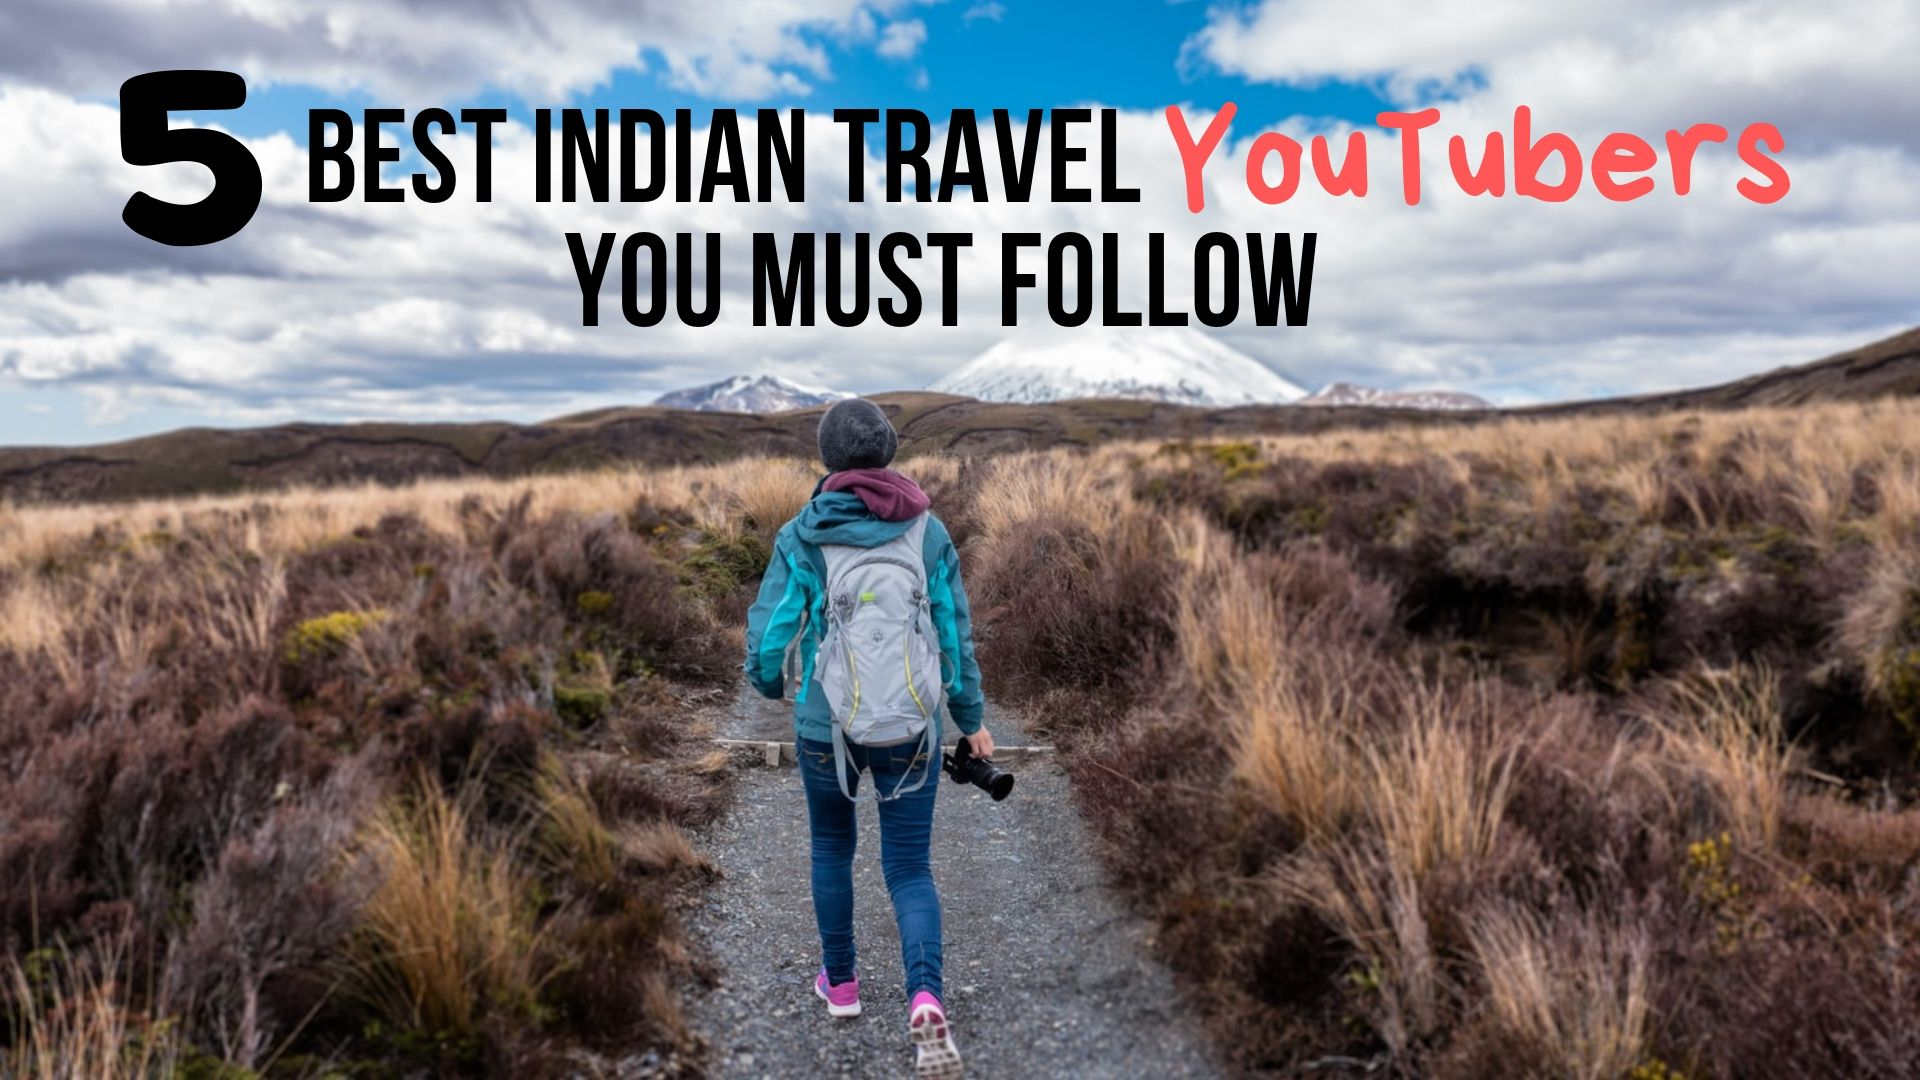 5 Best Indian Travel YouTubers You Must Follow